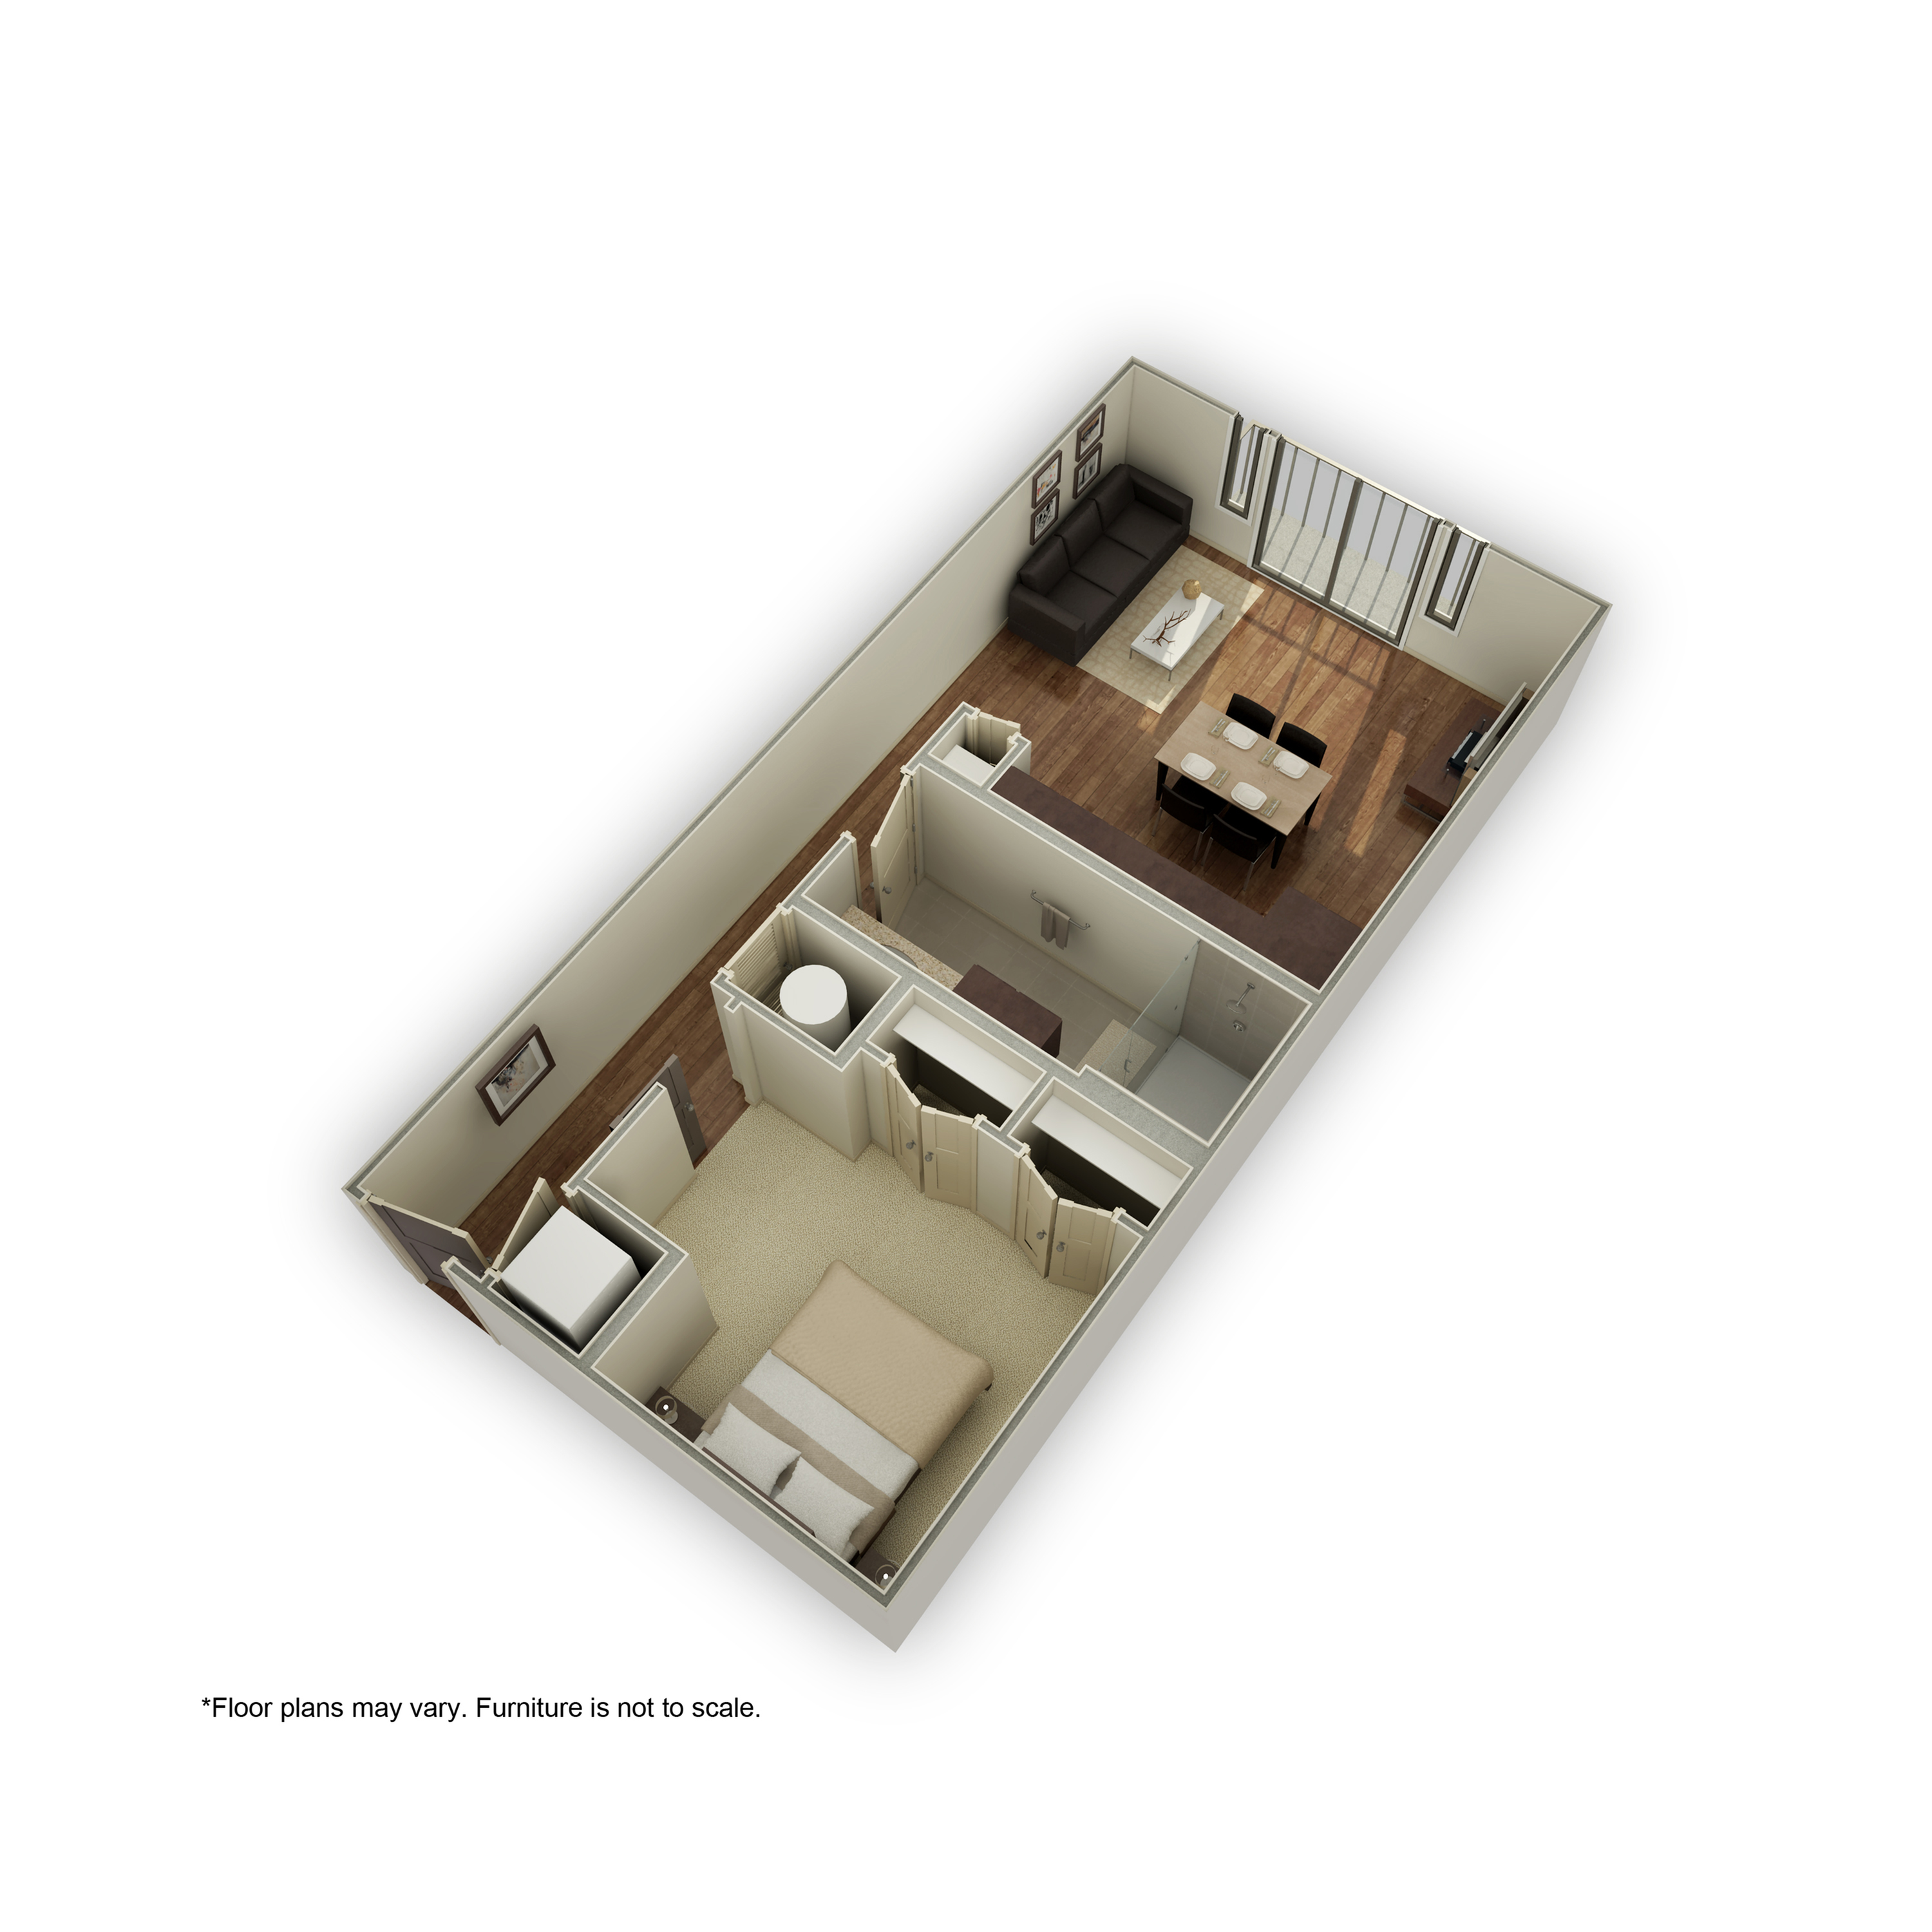 3800-A1A 3D Floor Plan | 1 Bedroom with 1 Bath | 649 Square Feet | 3800 Main | Apartment Homes